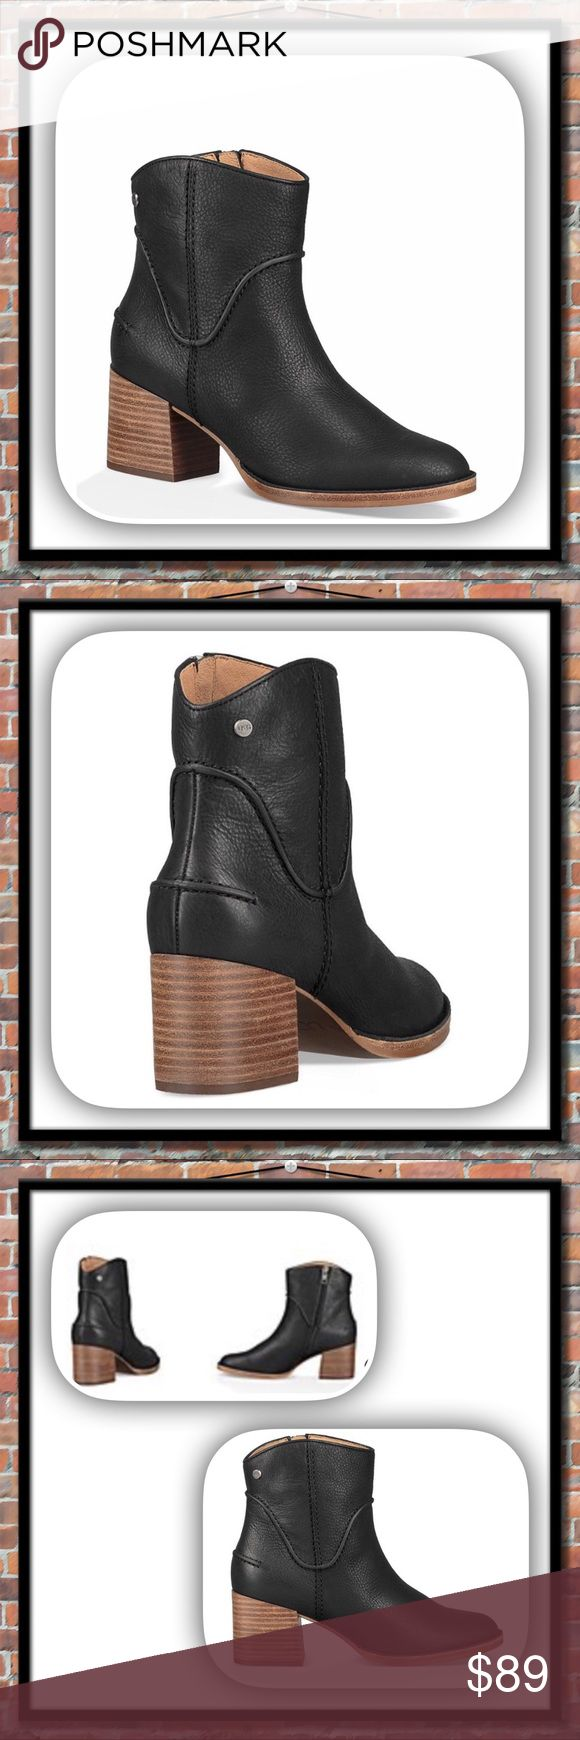 b64fa96e4f3 🌼 UGG Annie Black Leather Ankle Boots 🌼 Stylish and comfo